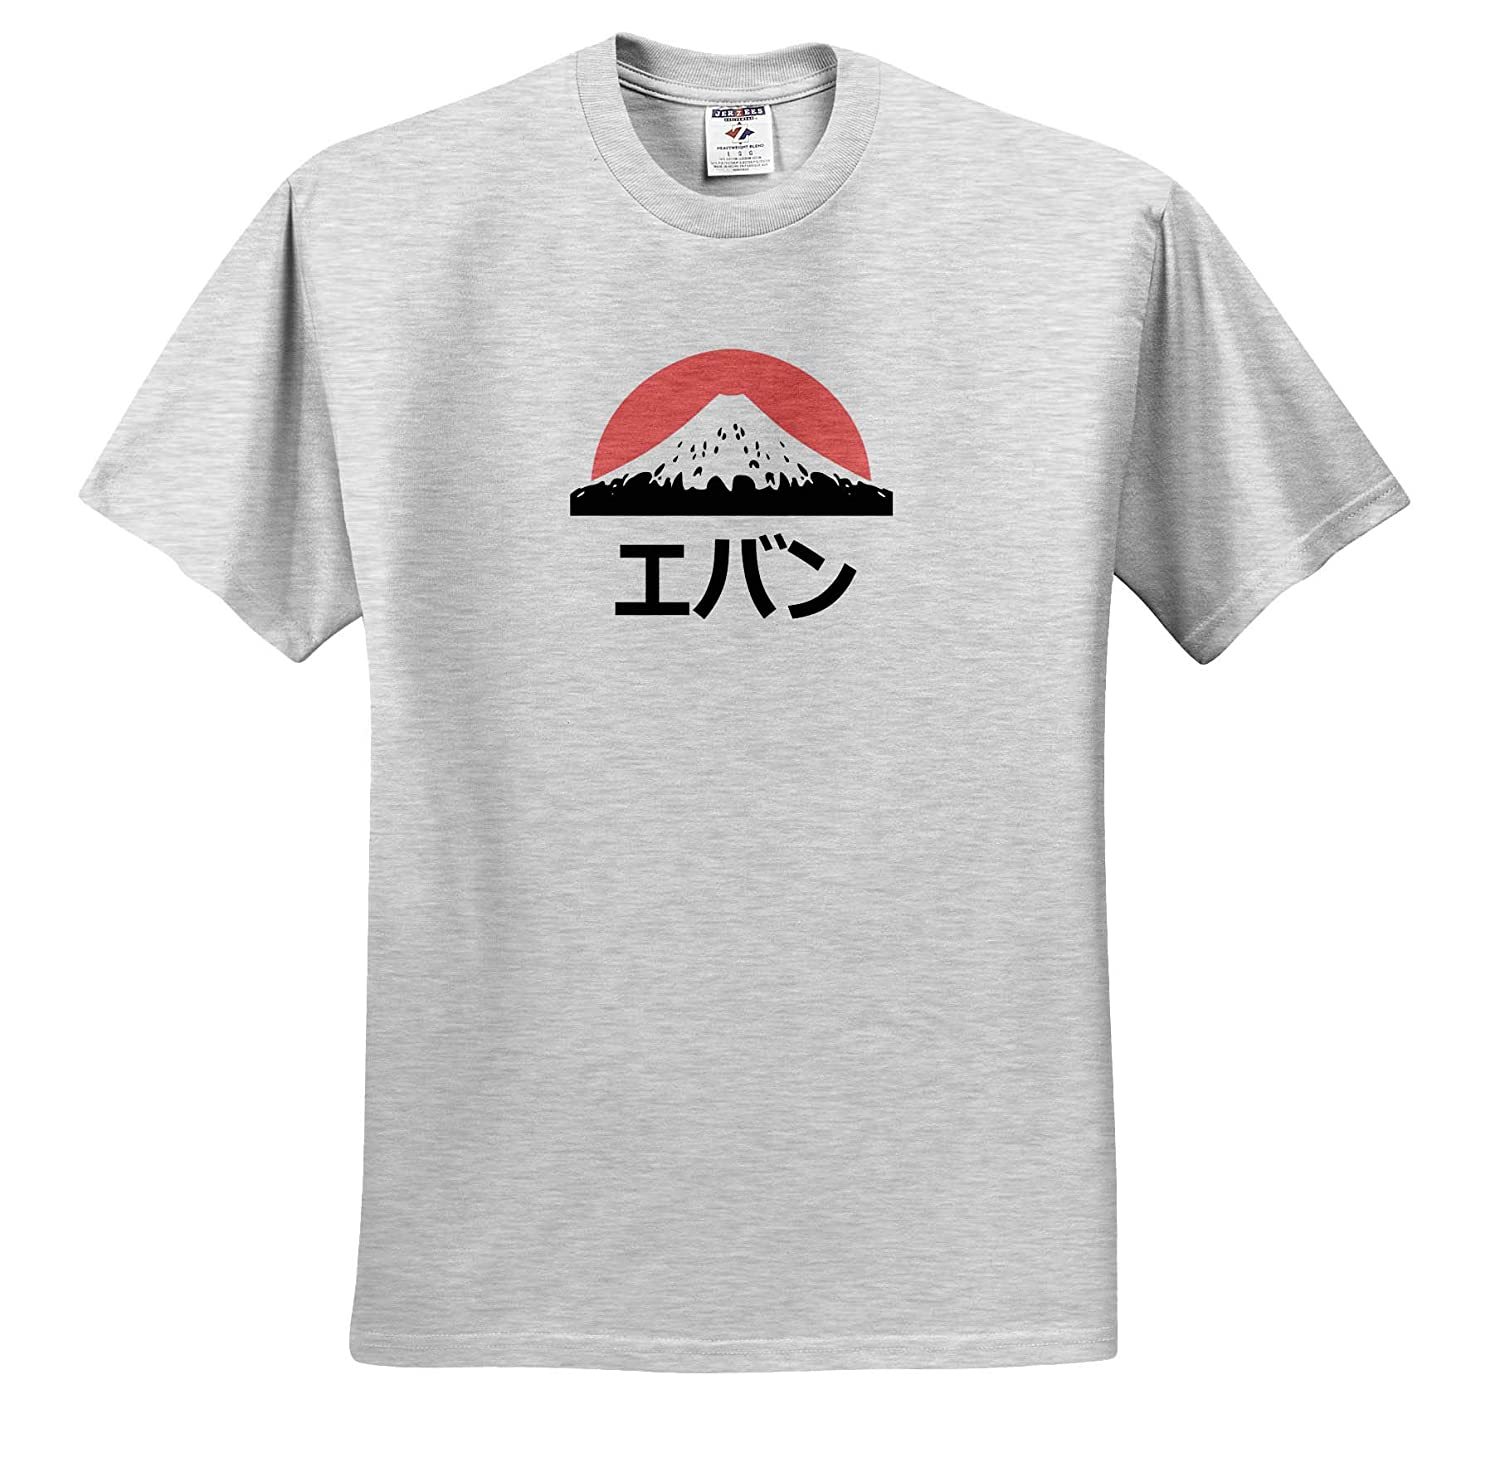 ts/_320486 Adult T-Shirt XL 3dRose InspirationzStore Name in Japanese Evan in Japanese Letters